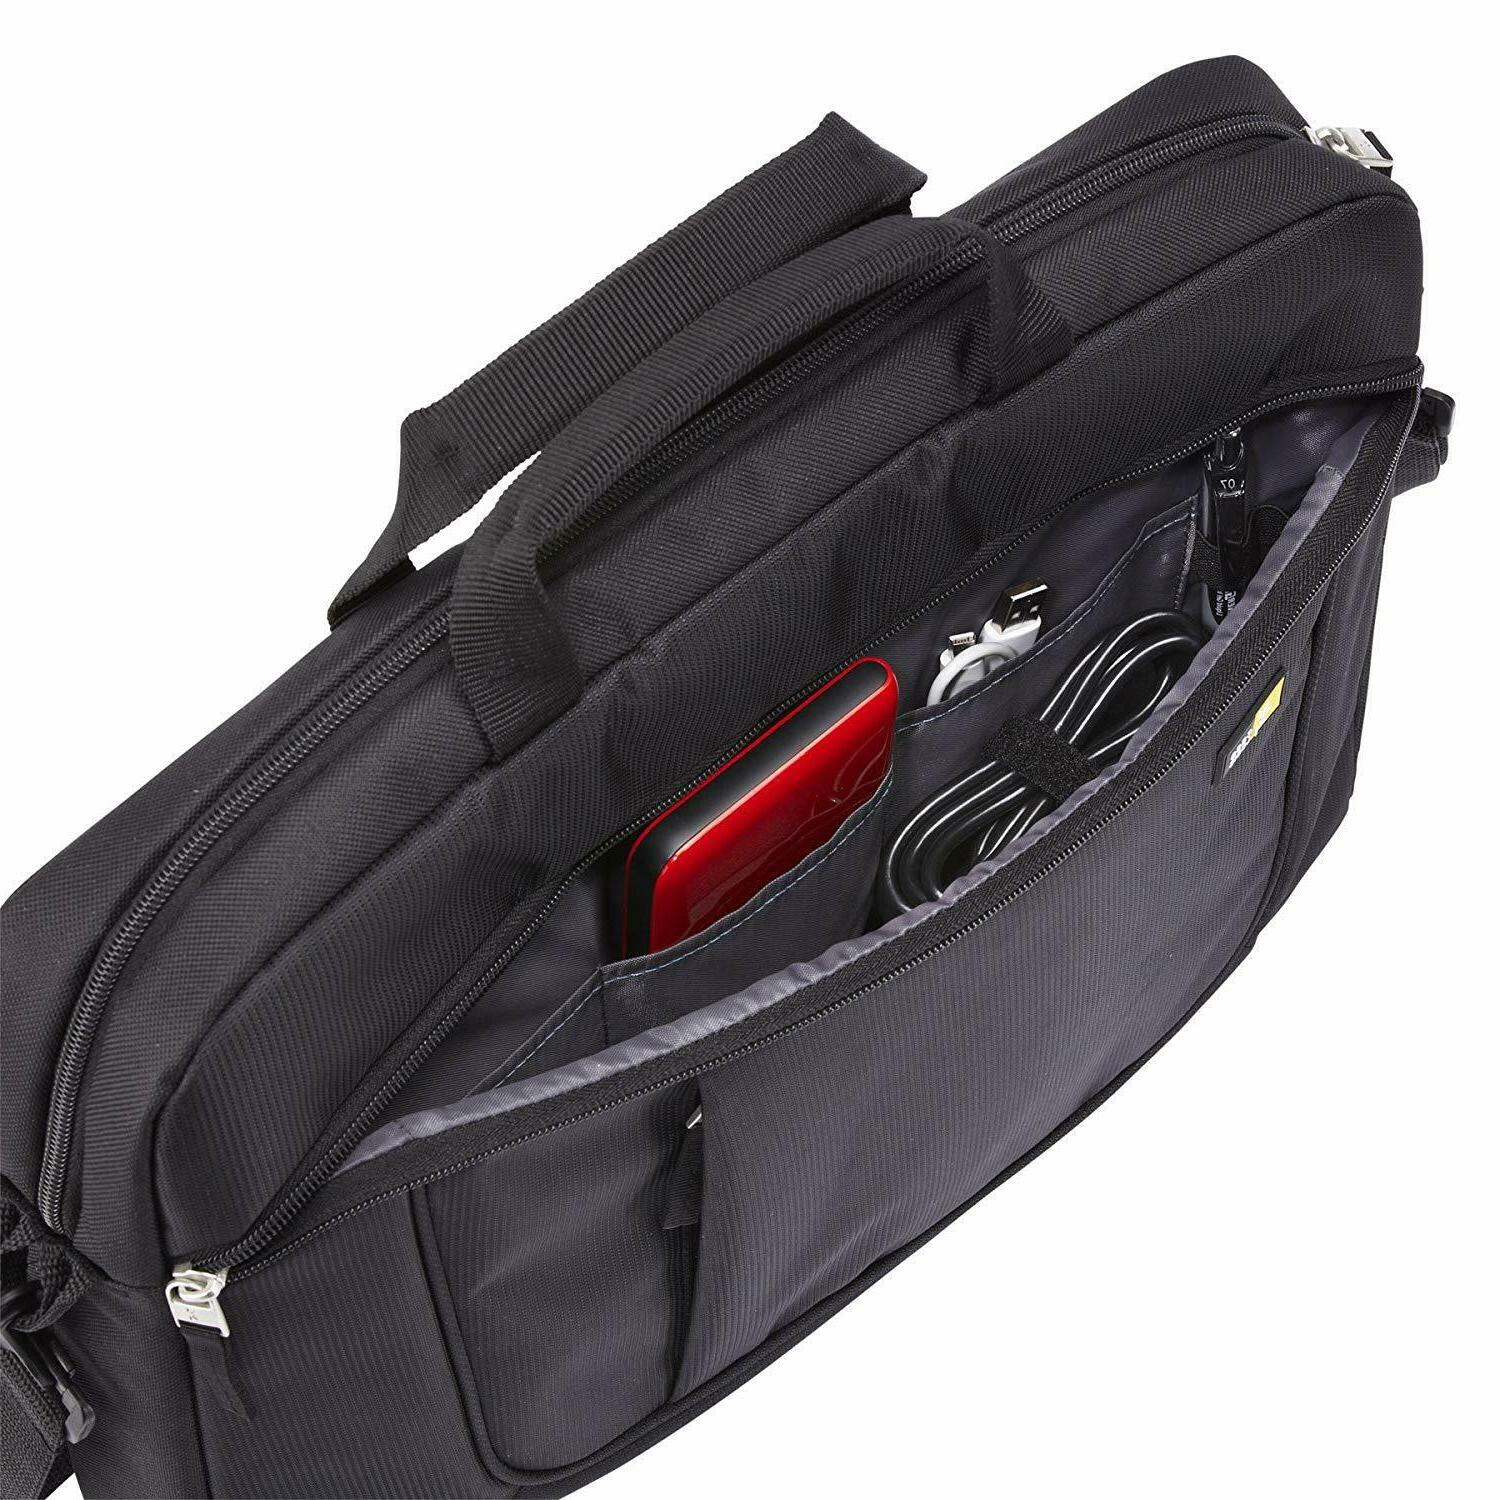 15.6 inch Laptop Case Computer Carrying